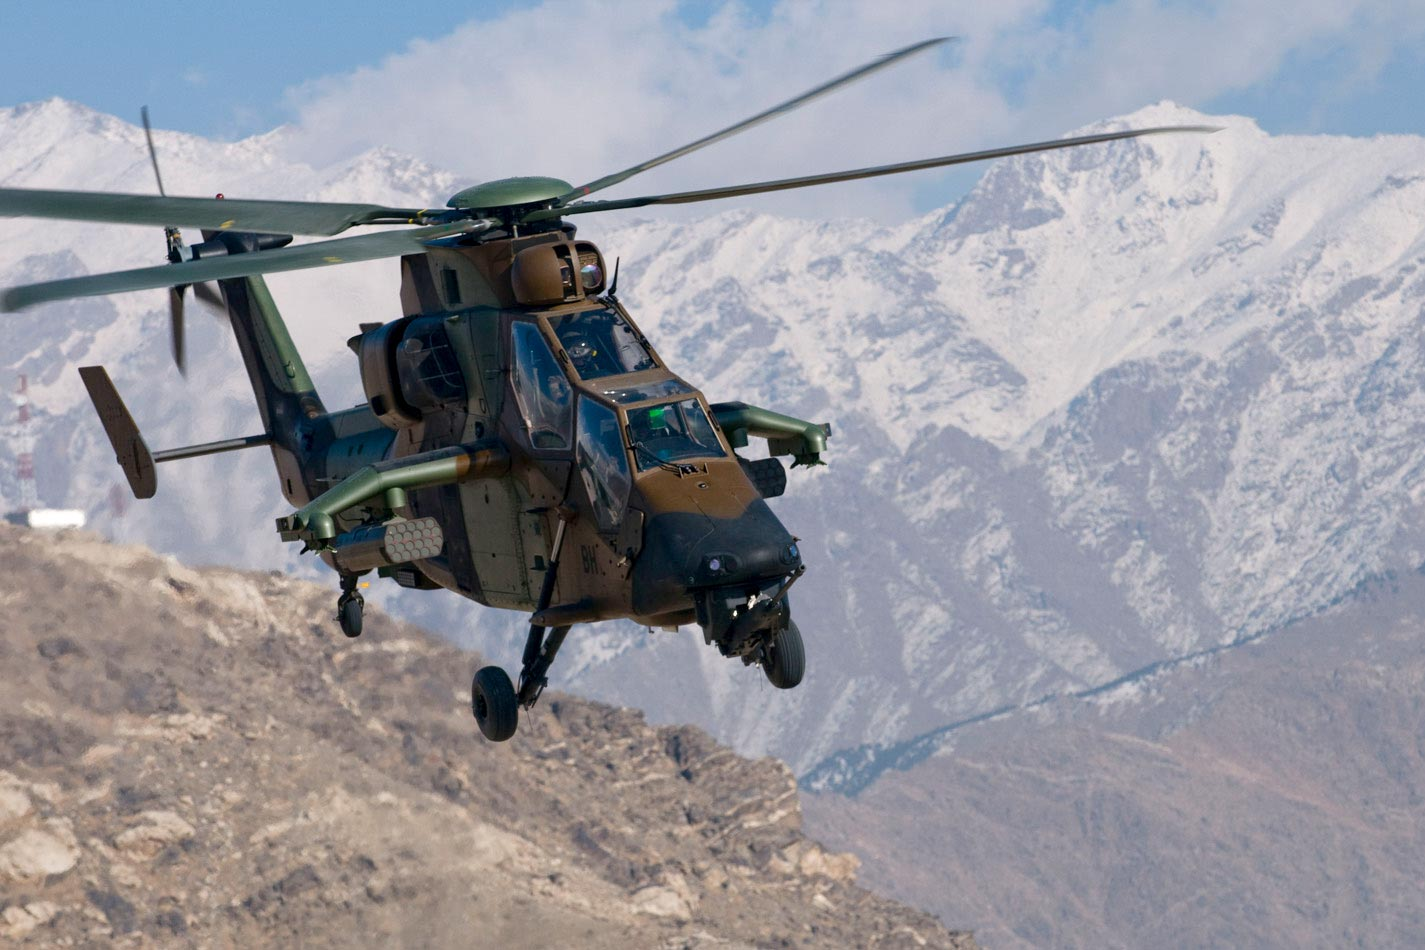 France conducts air operations in Mali and Burkina Faso